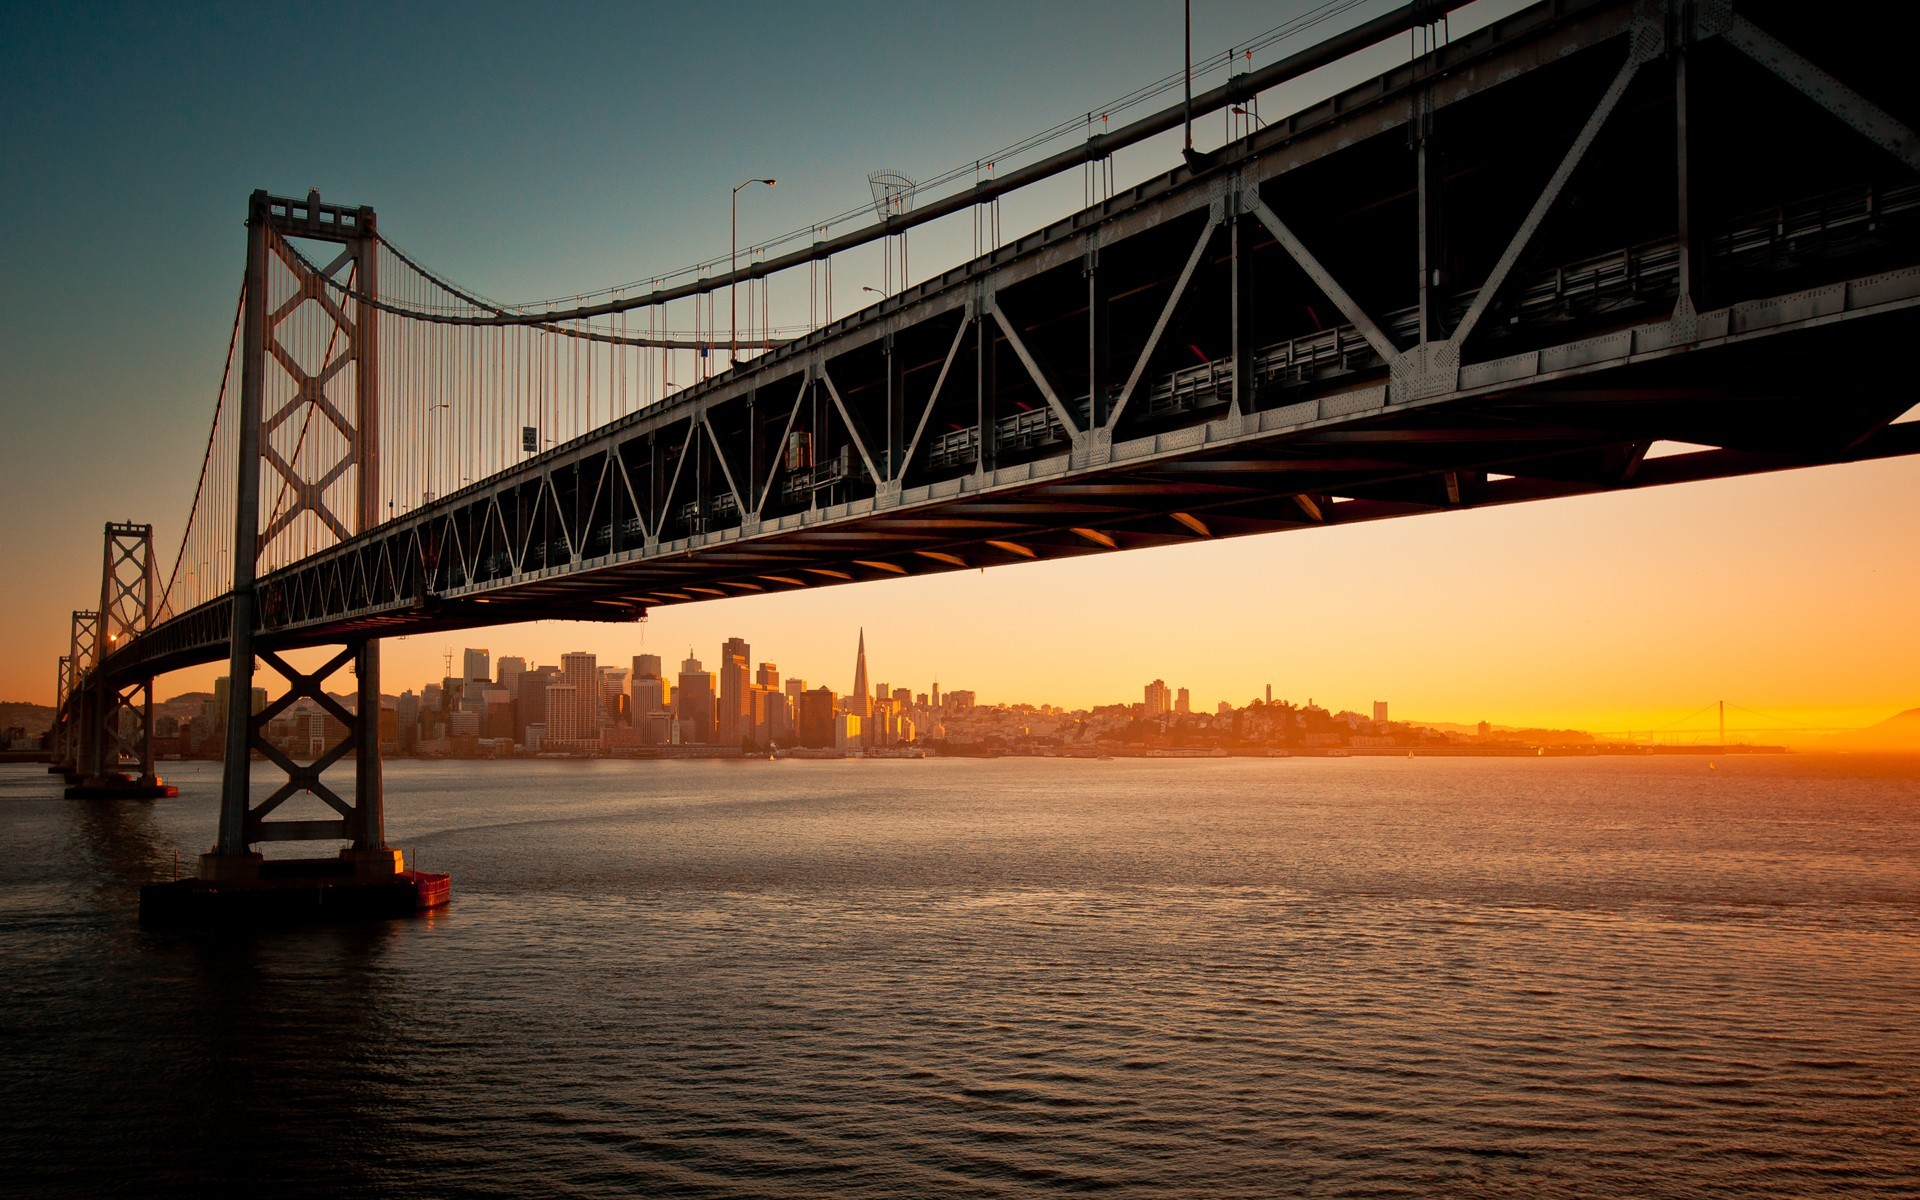 sunset cityscapes San Francisco HD Wallpaper